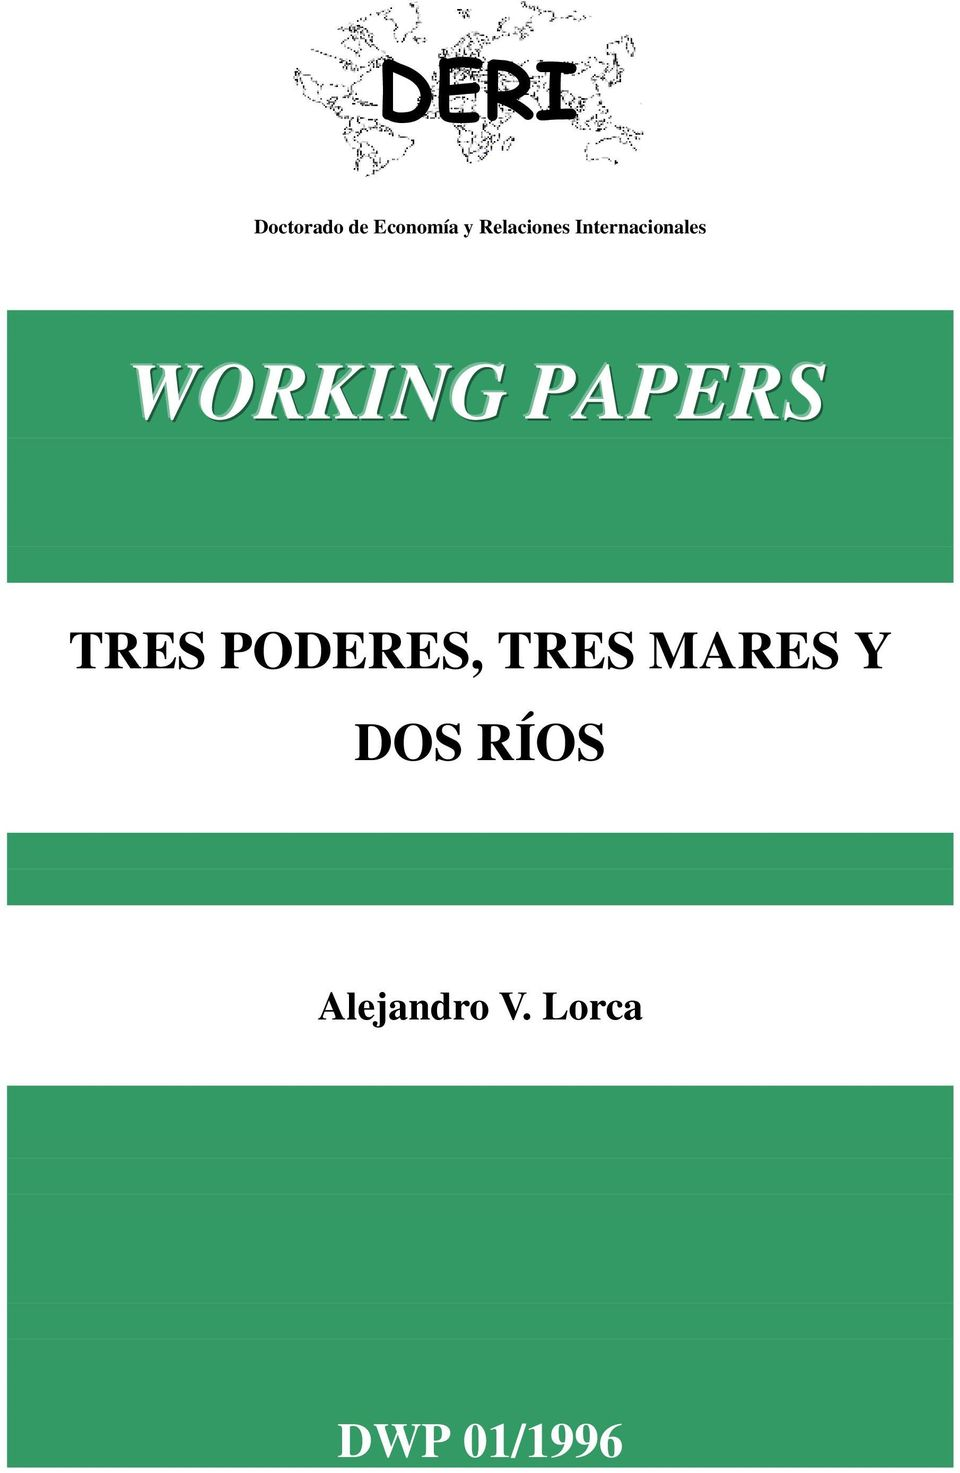 PAPERS TRES PODERES, TRES MARES Y